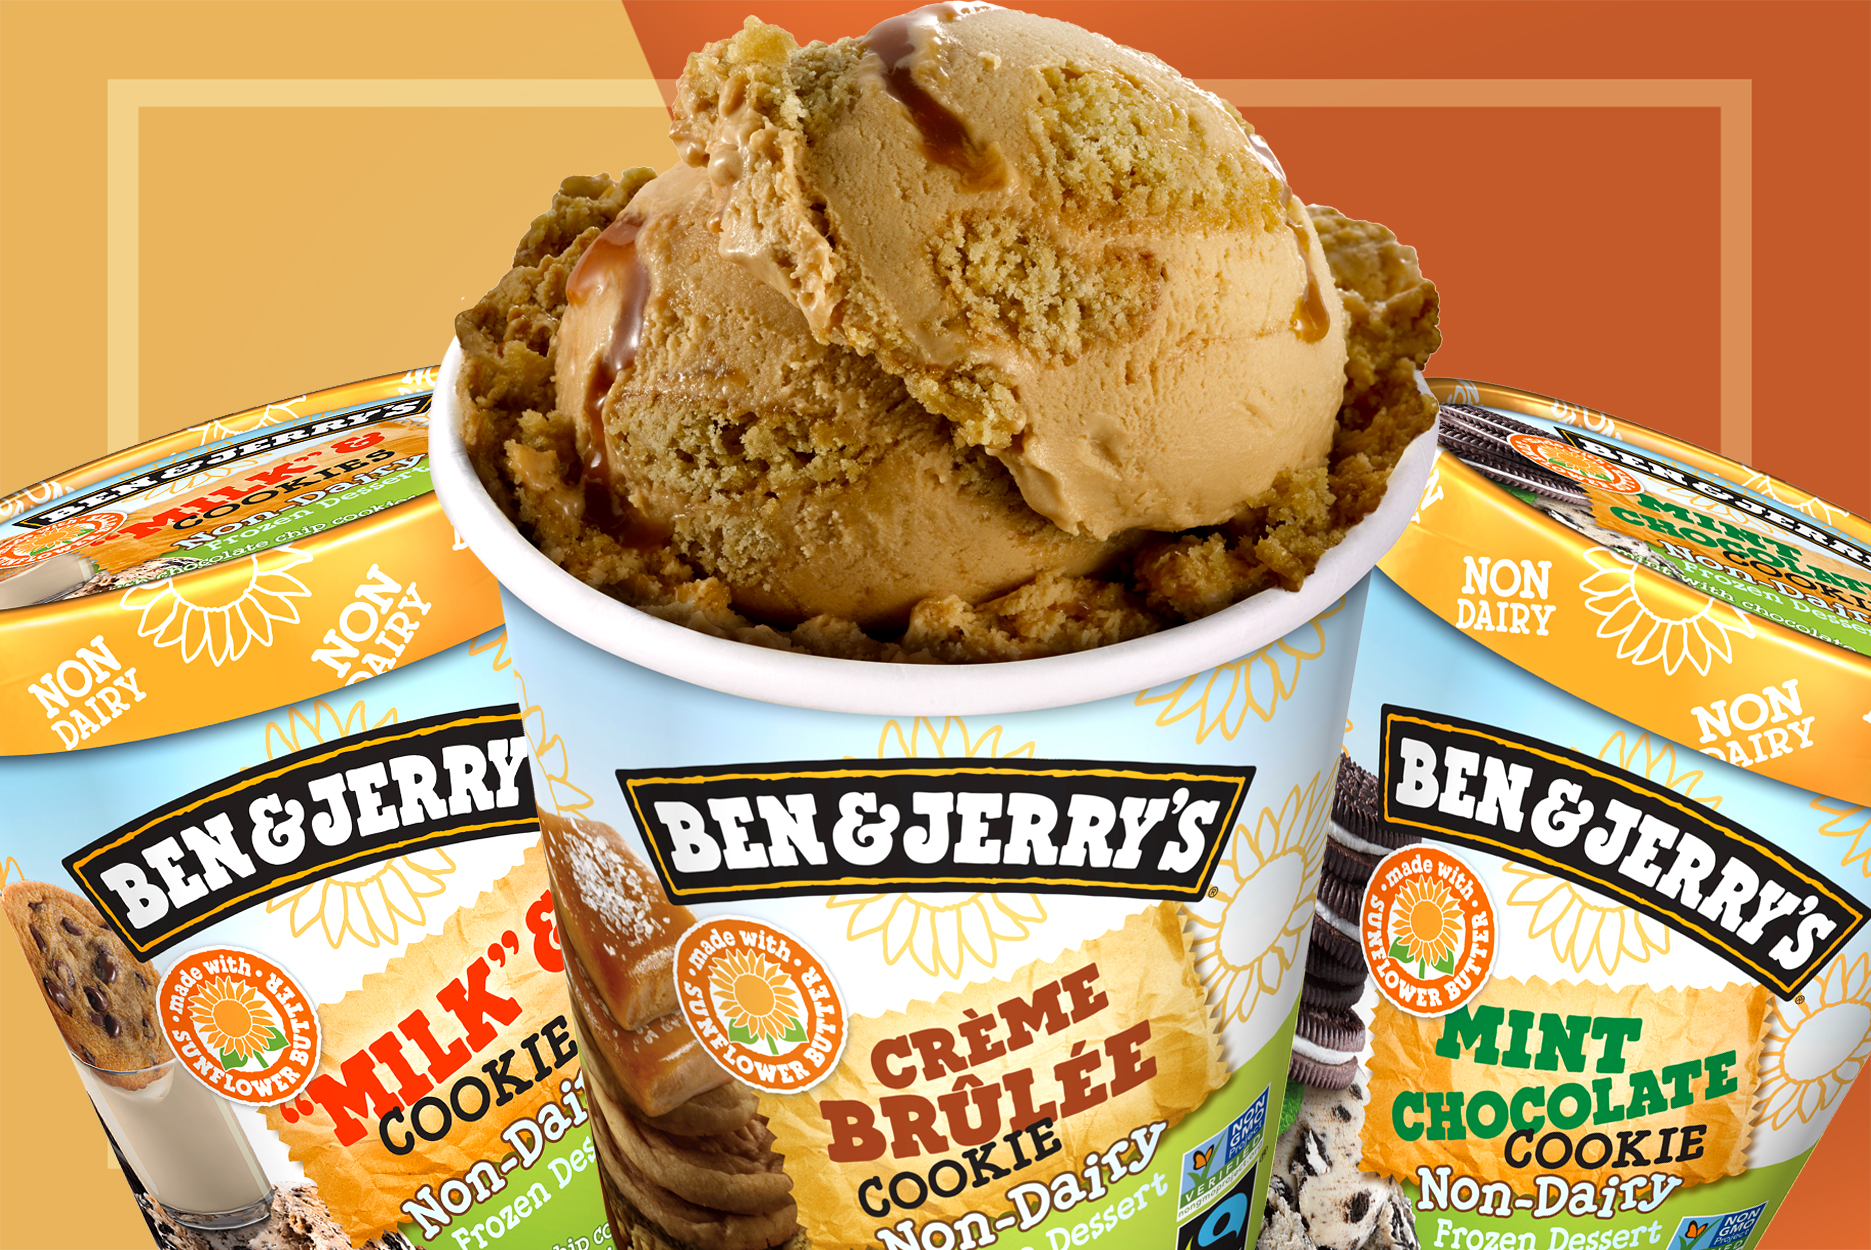 Ben & Jerry's sunflower butter